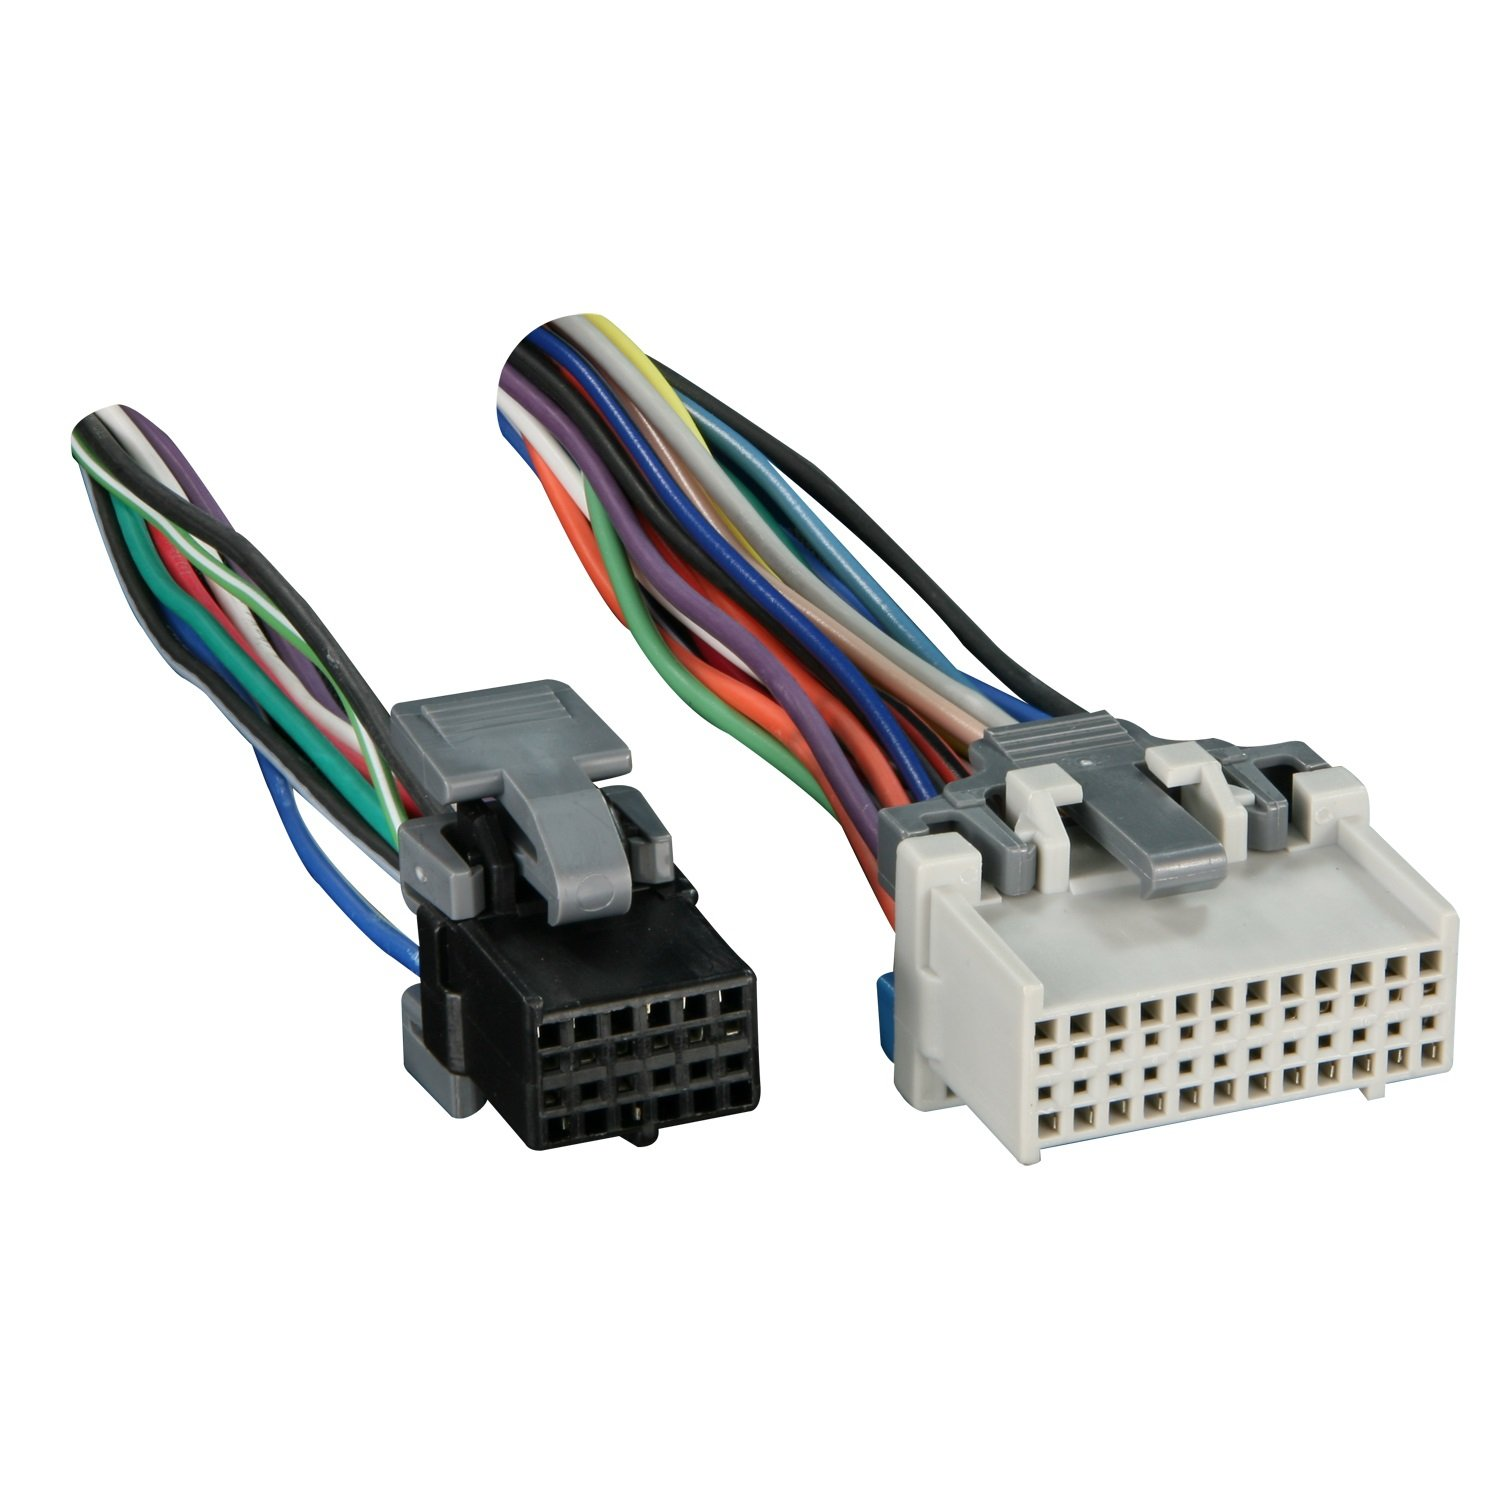 711log4bdML._SL1500_ amazon com metra turbowires 71 2003 1 wiring harness car electronics wiring harness trade show at virtualis.co